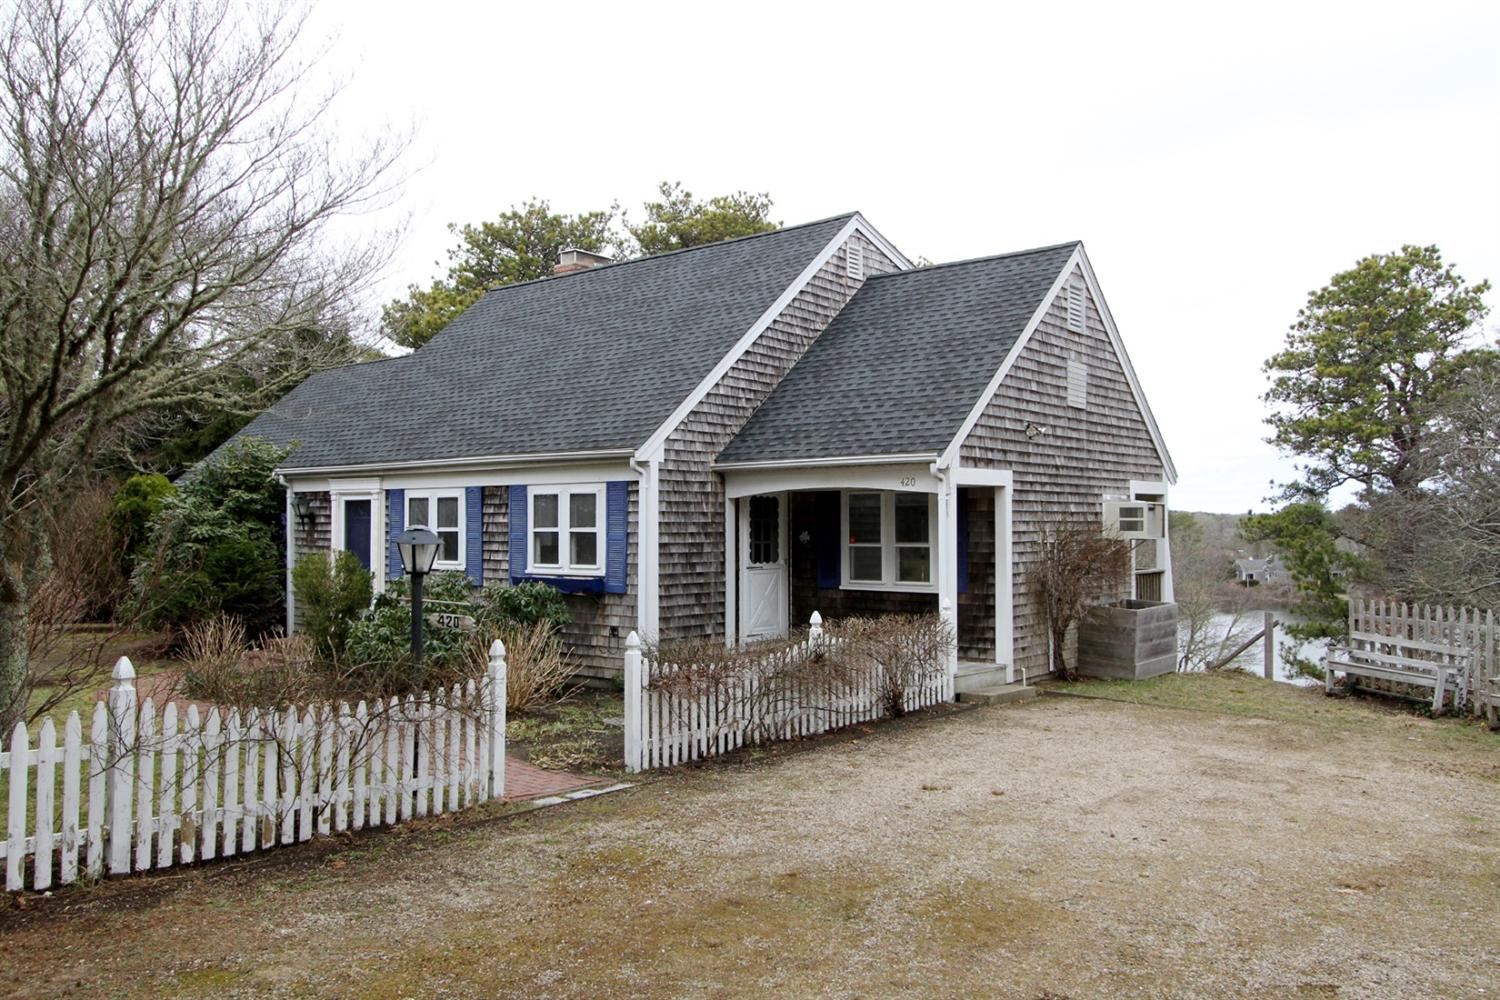 barnstable mature singles For sale: 3 bed, 2 bath ∙ 1540 sq ft ∙ 35 spice ln, barnstable, ma 02655 ∙ $675,000 ∙ mls# 72236173 ∙ this immaculate archibald built remodeled home is located near the village and dowses beach i.